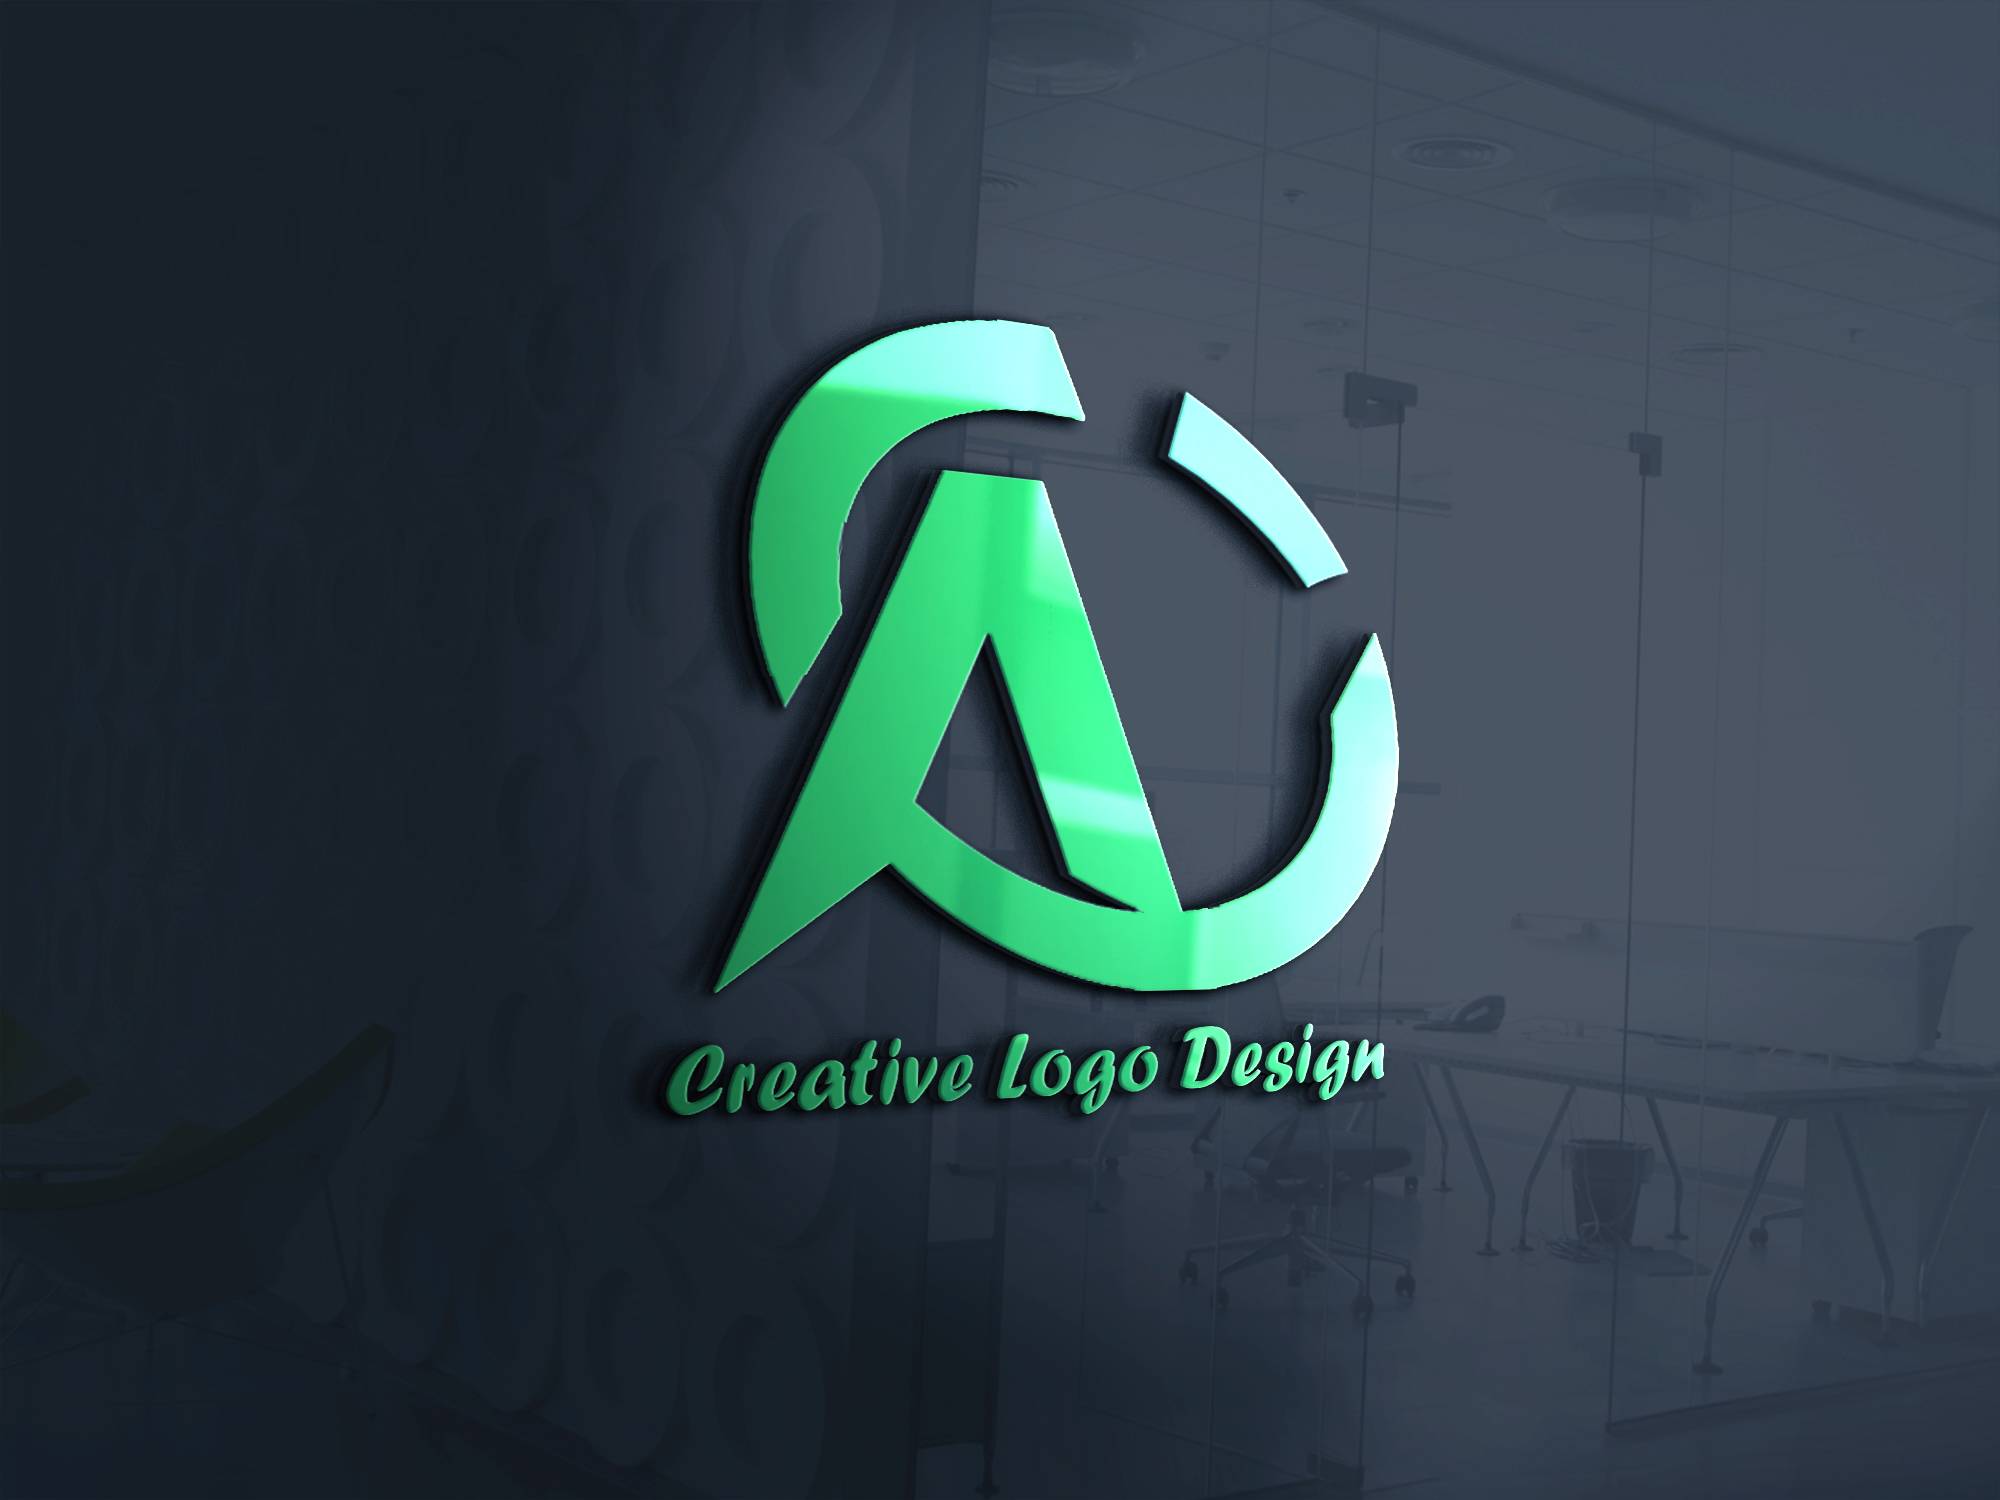 Photoshop Editing and Logo design